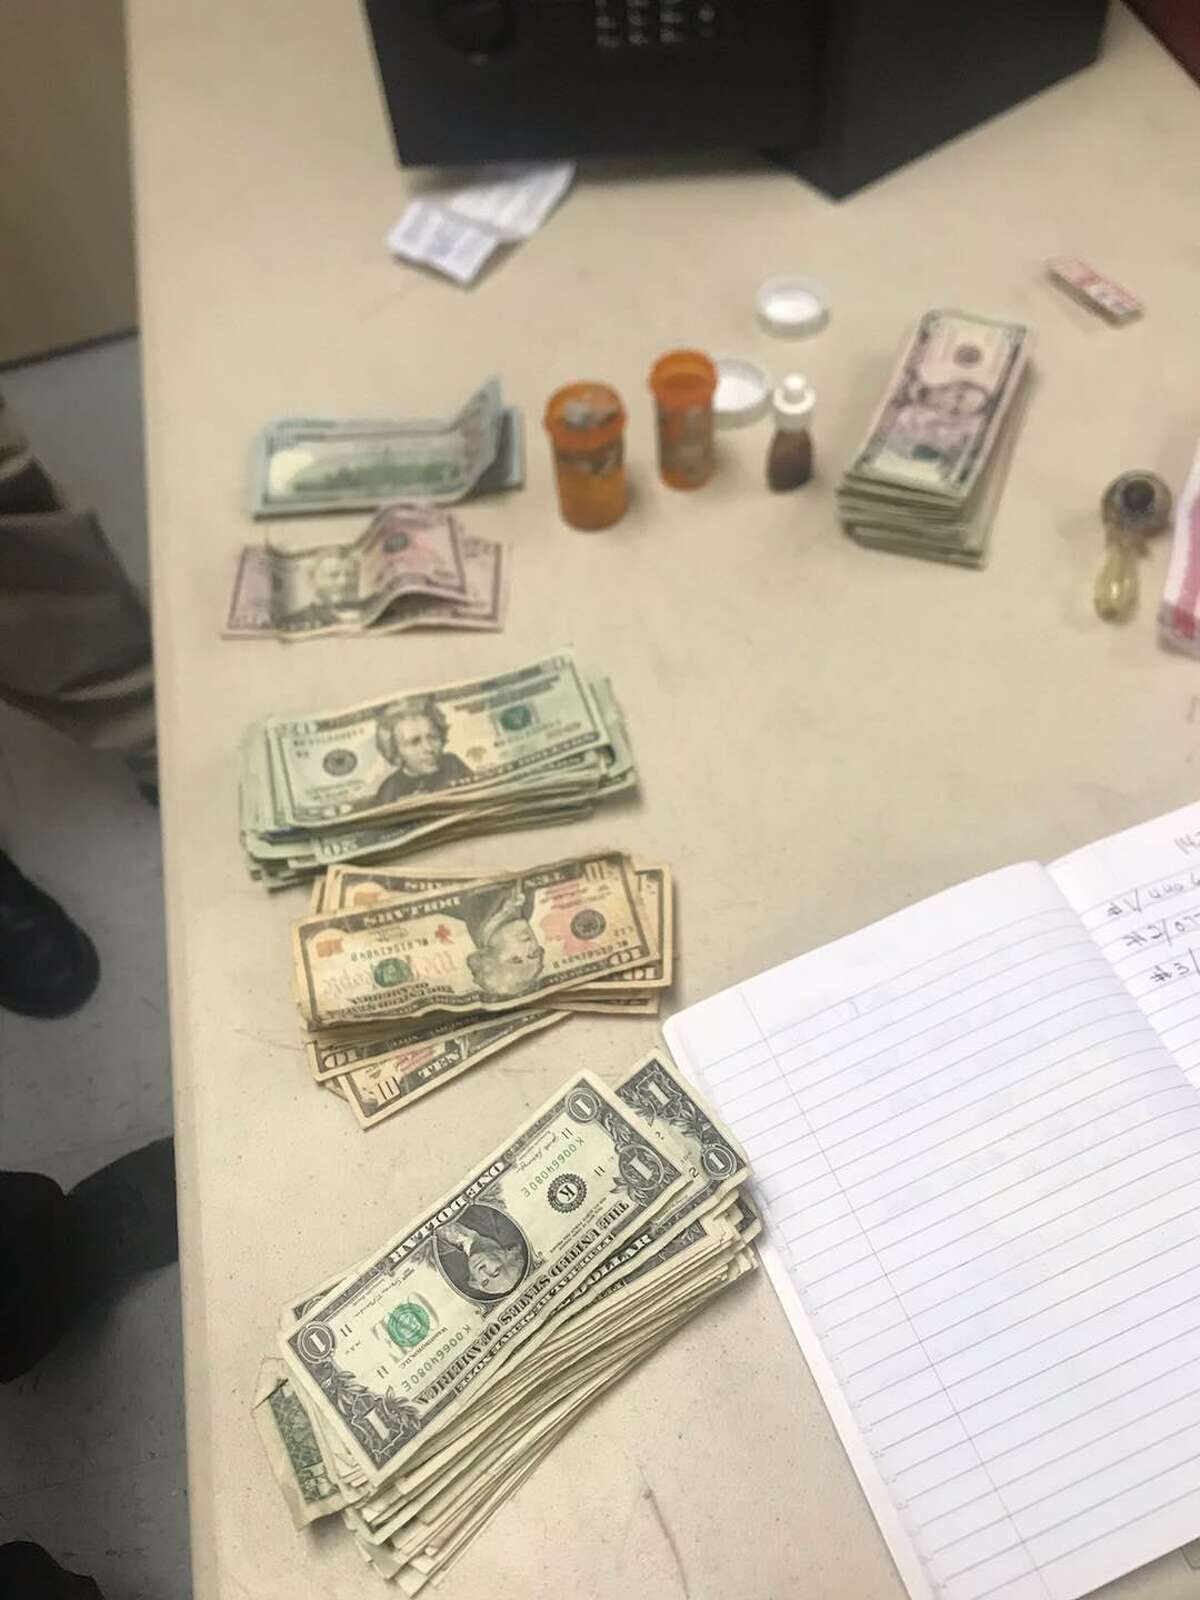 The Zapata County Sheriff's Office seized cash, marijuana, heroin and liquid heroin known as